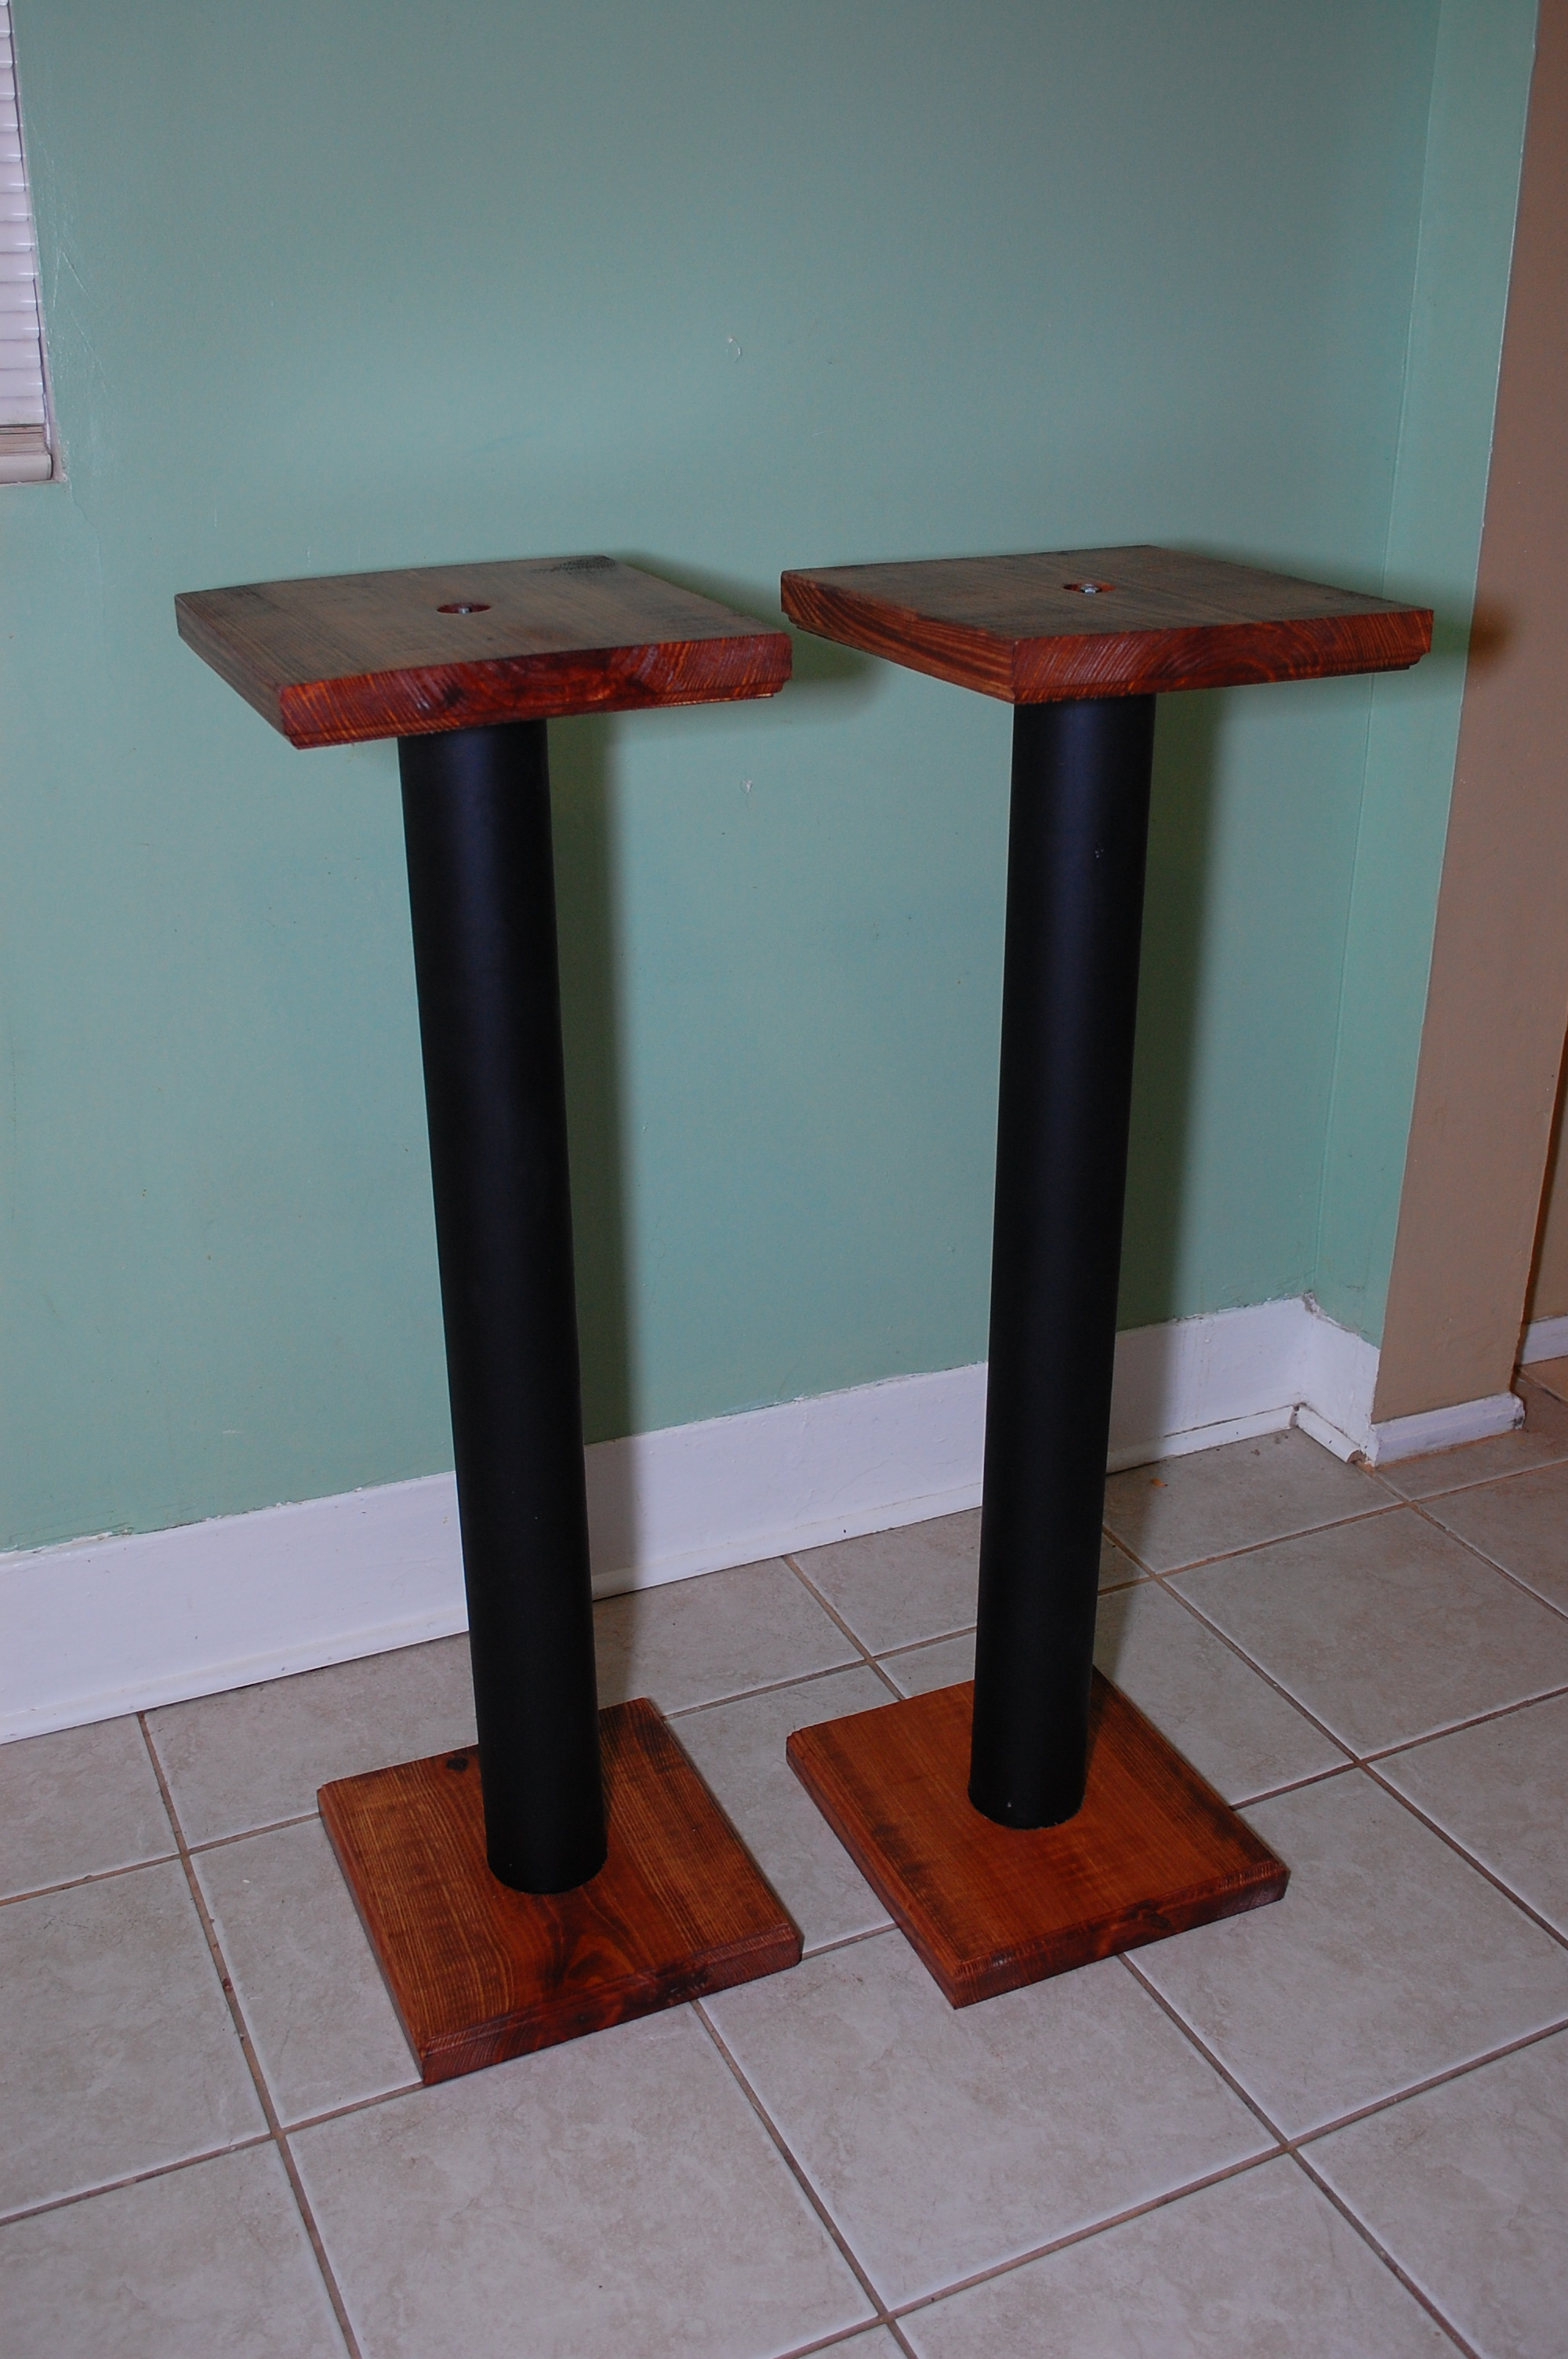 Best ideas about DIY Speaker Stands . Save or Pin Jordan Colburn Great DIY Speaker Stands for $30 Now.